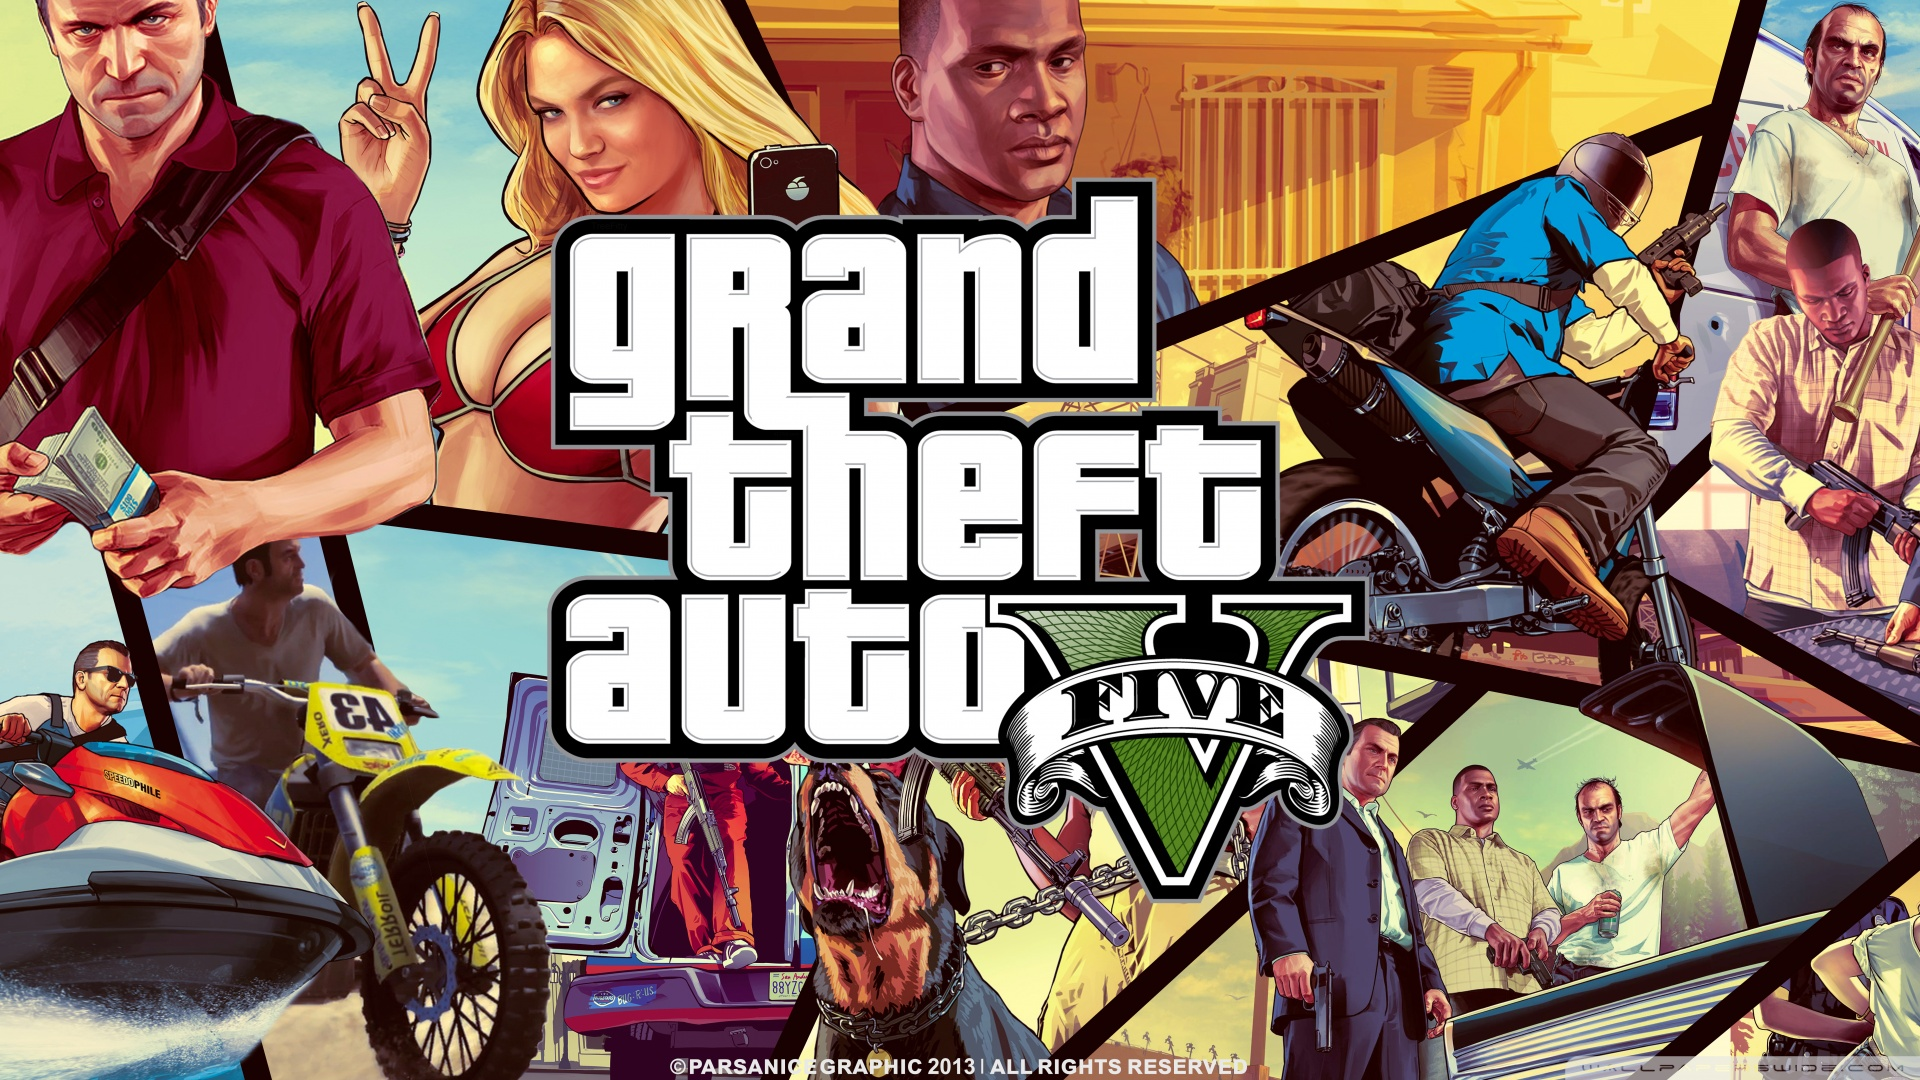 grand_theft_auto_v_9-wallpaper-1920x1080.jpg